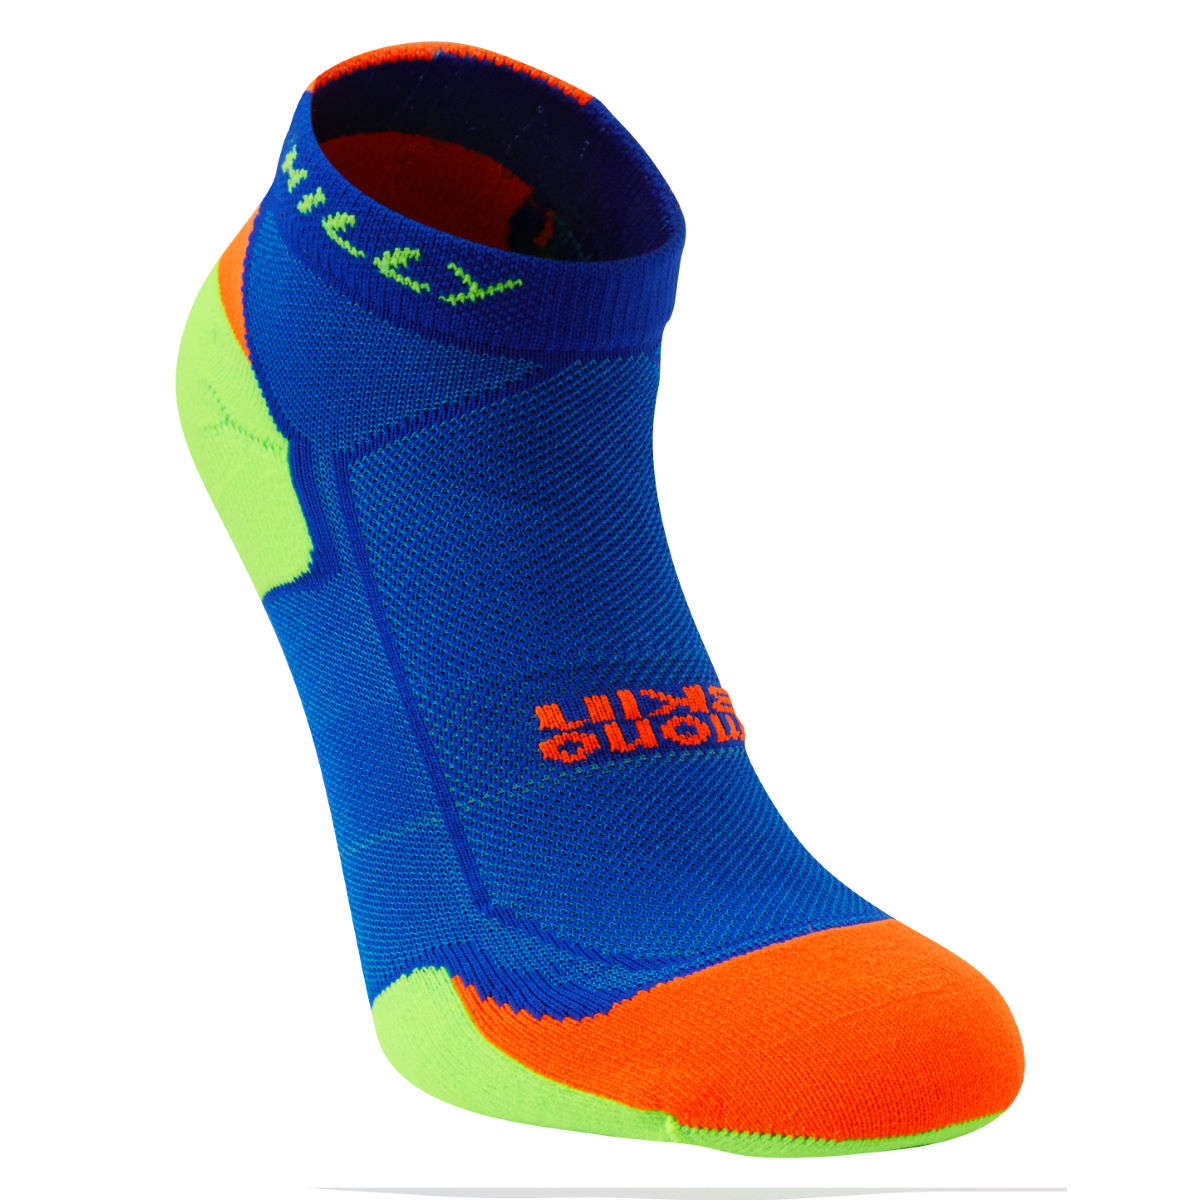 Calcetines bajos Hilly Lite-Cushion - Calcetines para correr